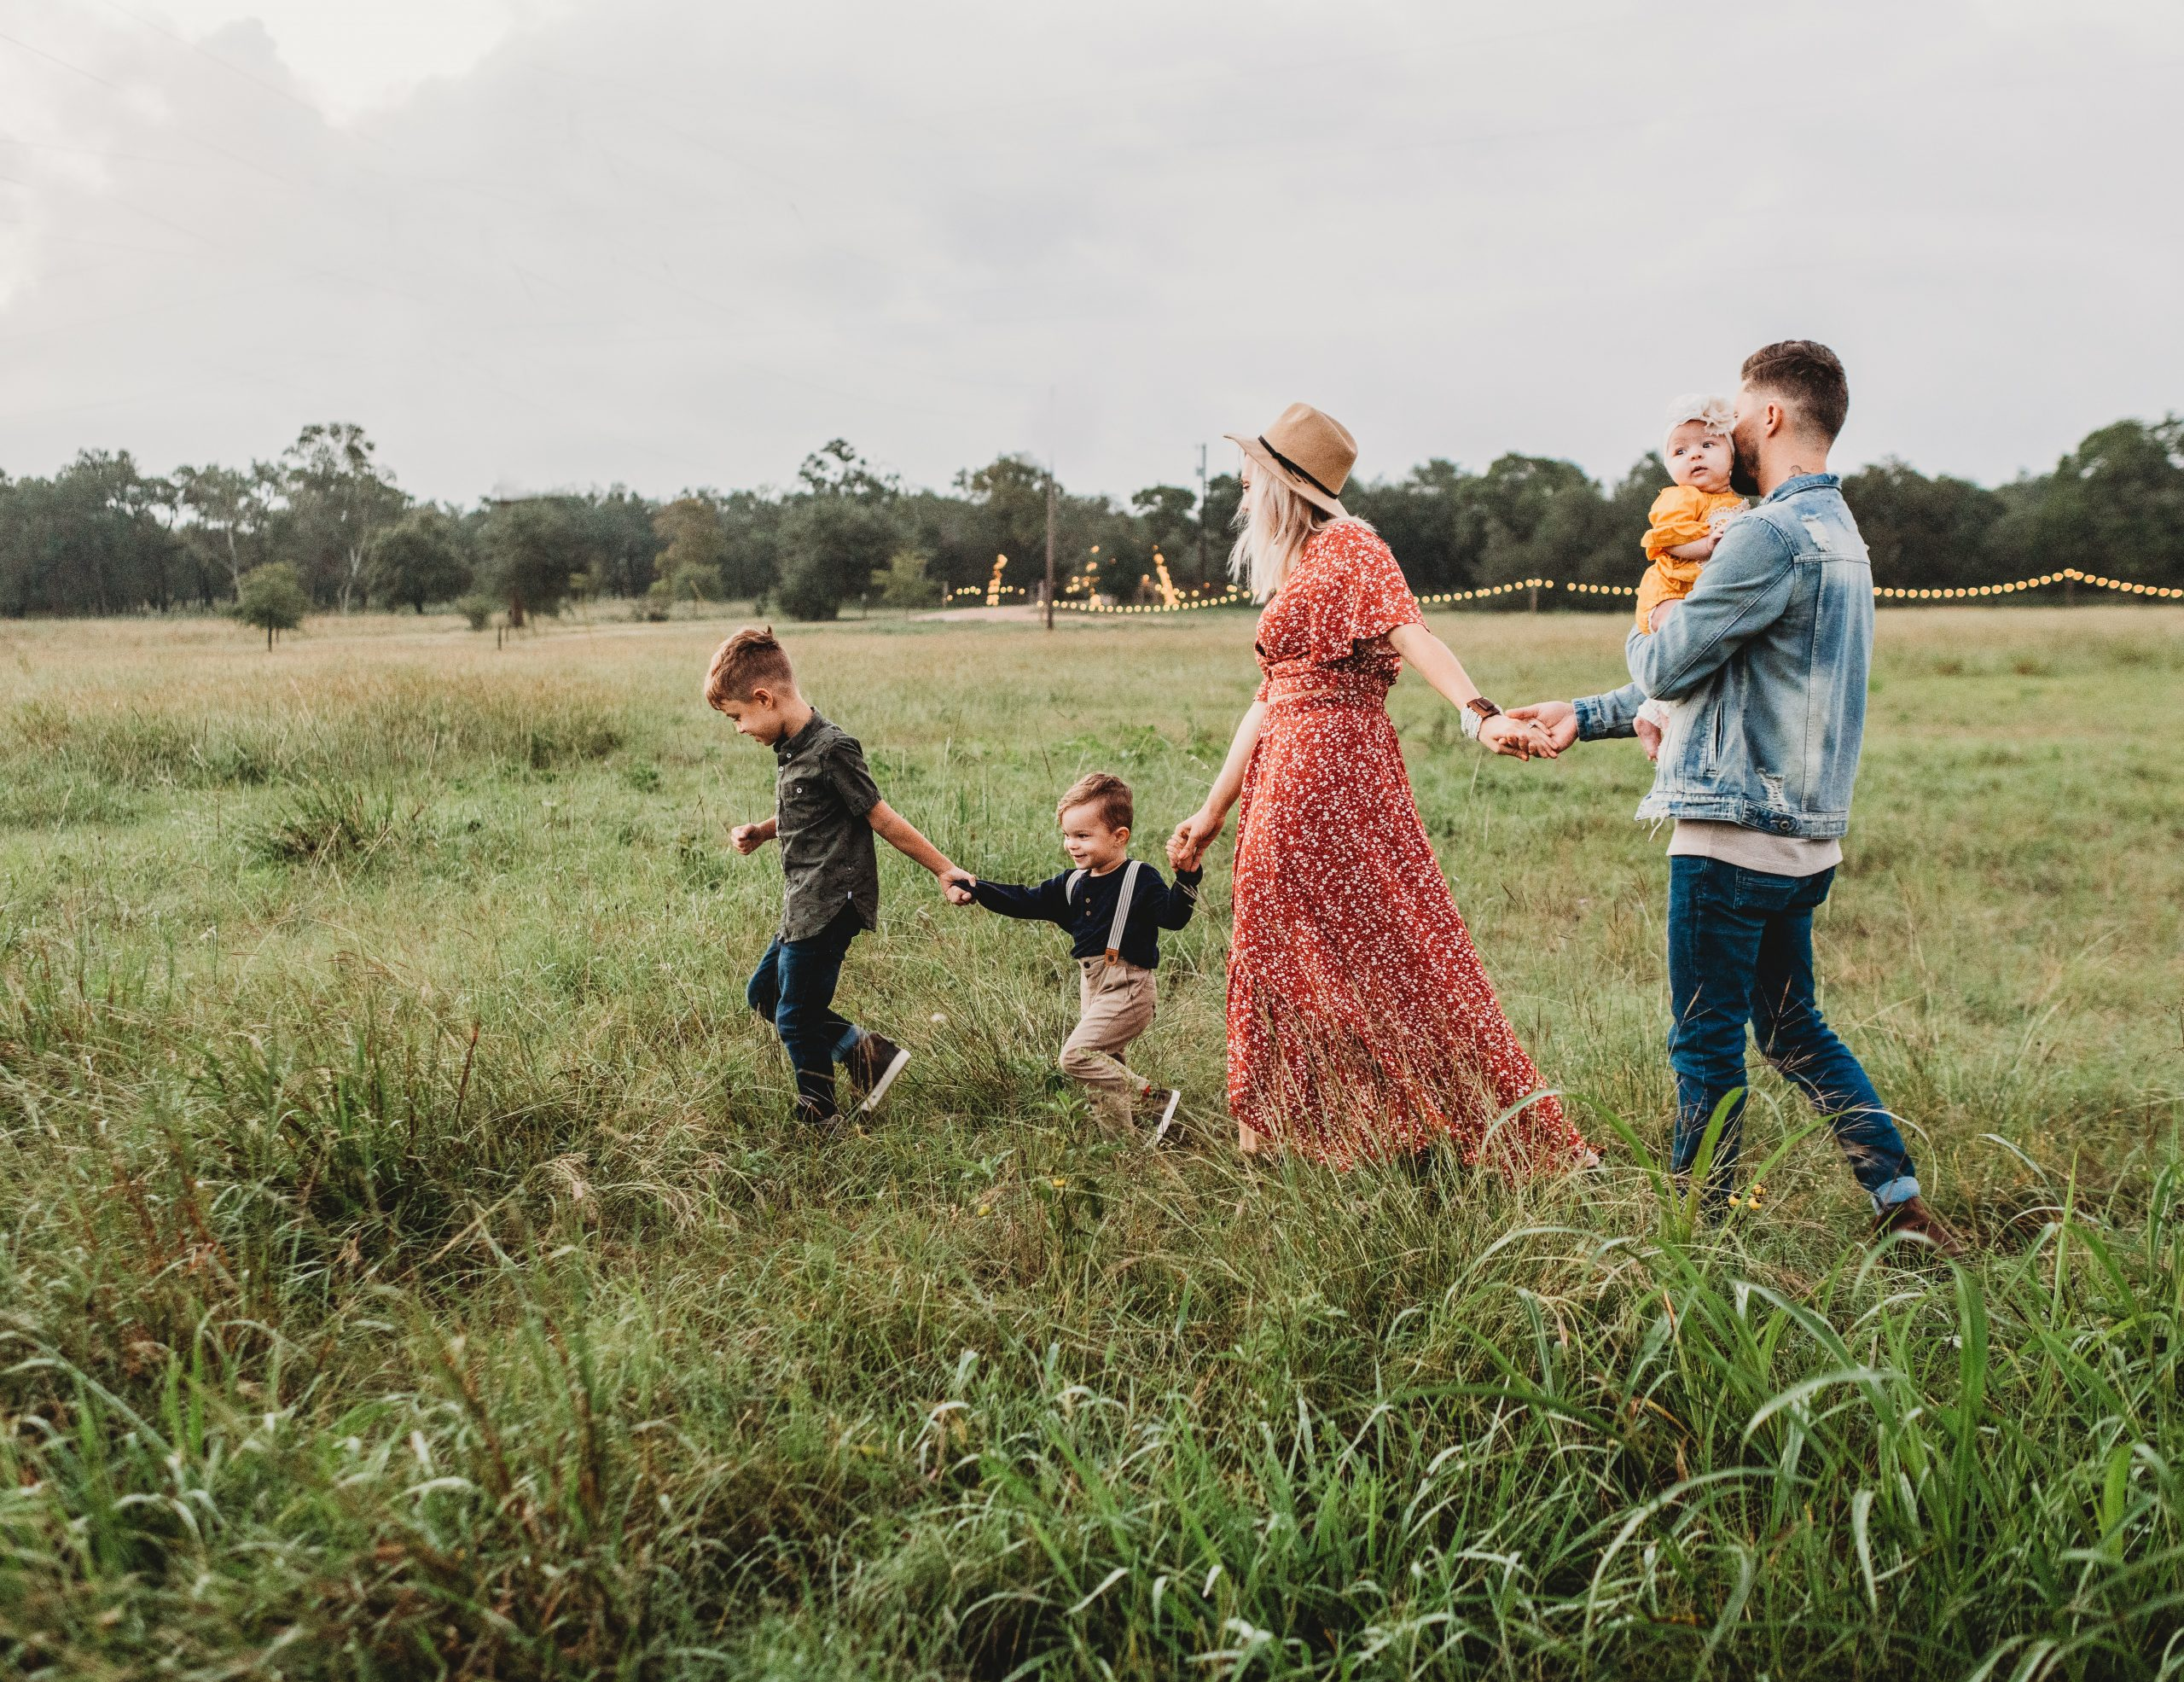 Natural Allergy Support for the Whole Family